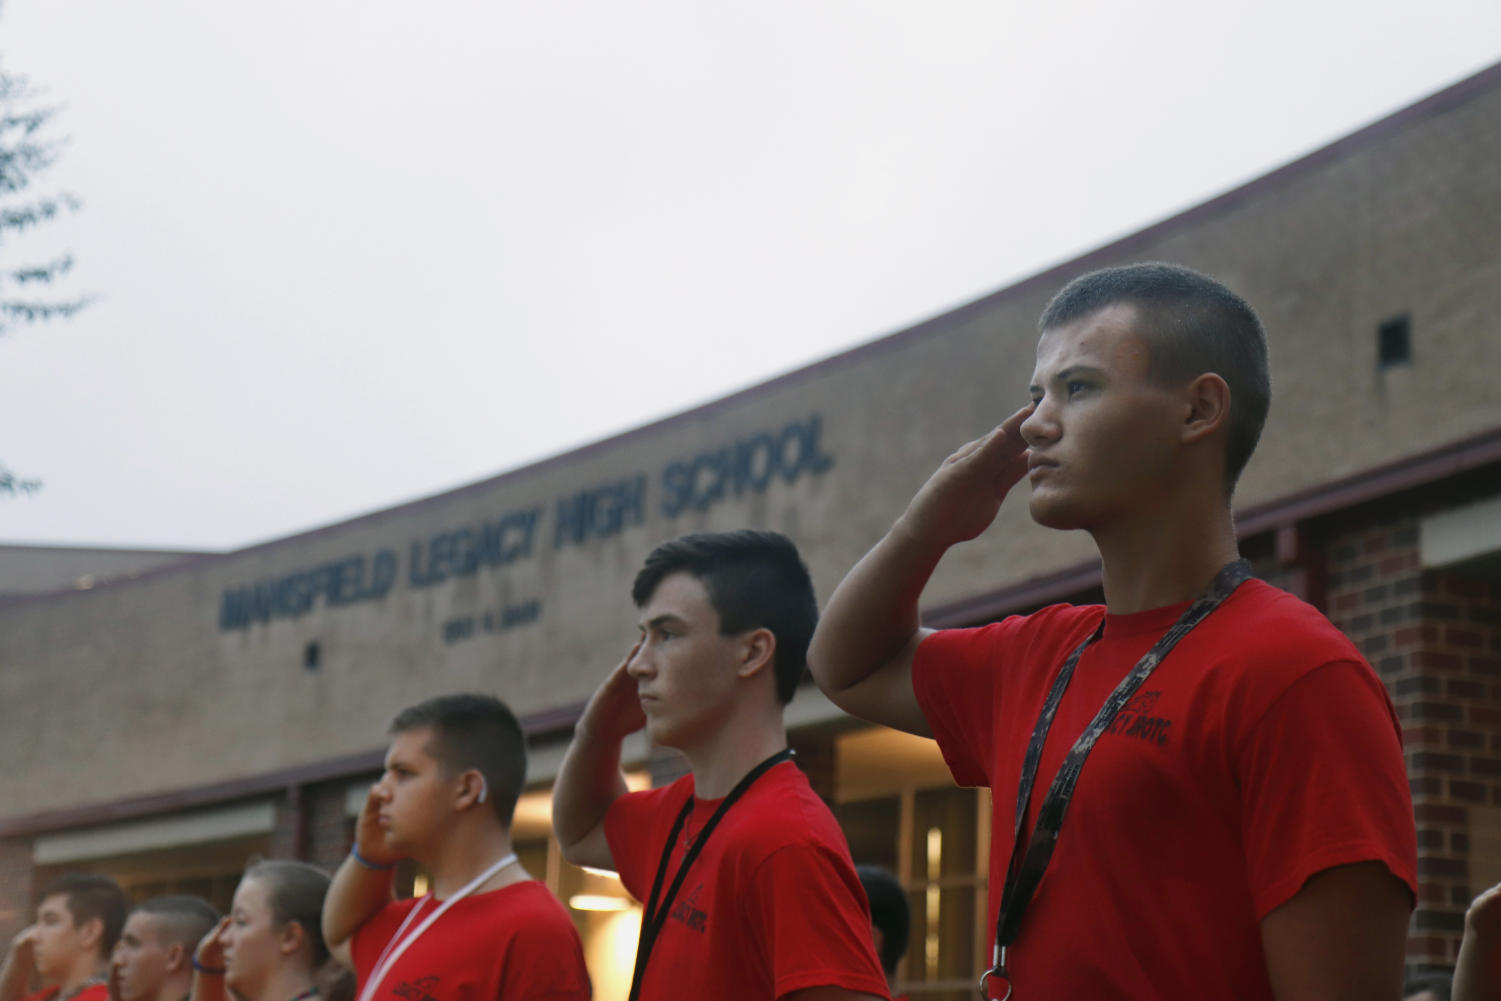 Along with the JROTC team, Alex Sims, 11 salutes at the on 9/11 flag ceremony.